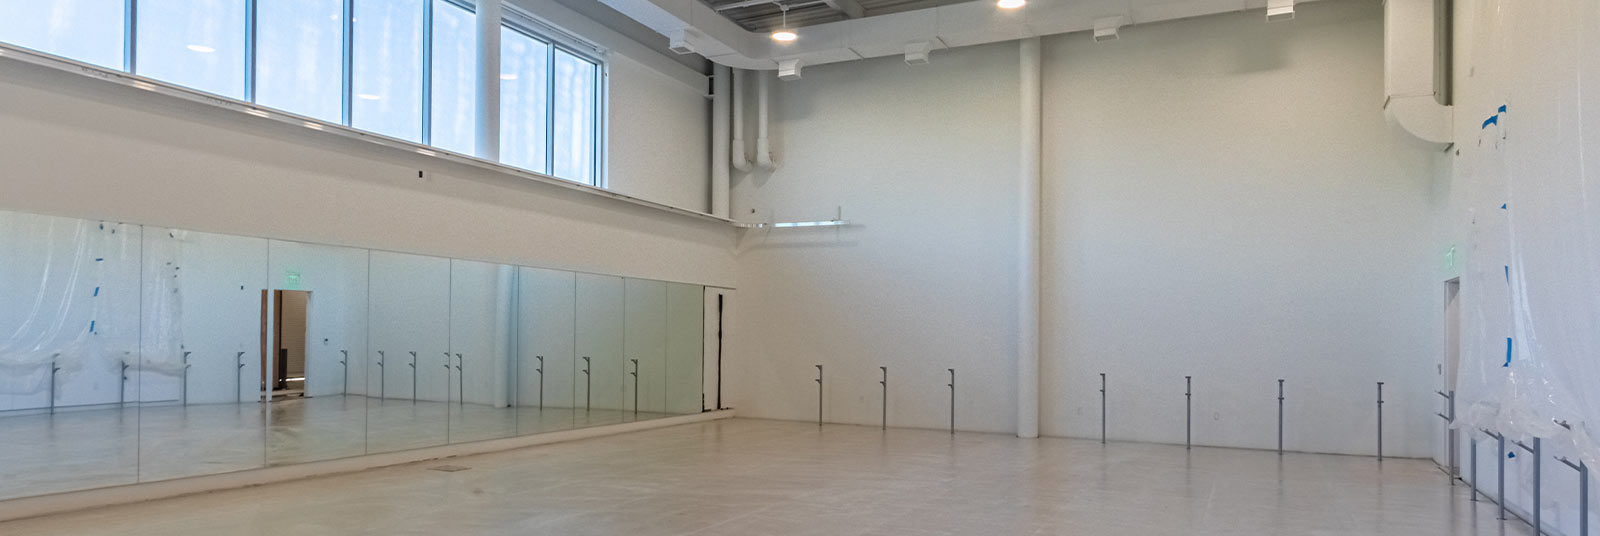 A finished ballet studio at the new Cincinnati Ballet facility.